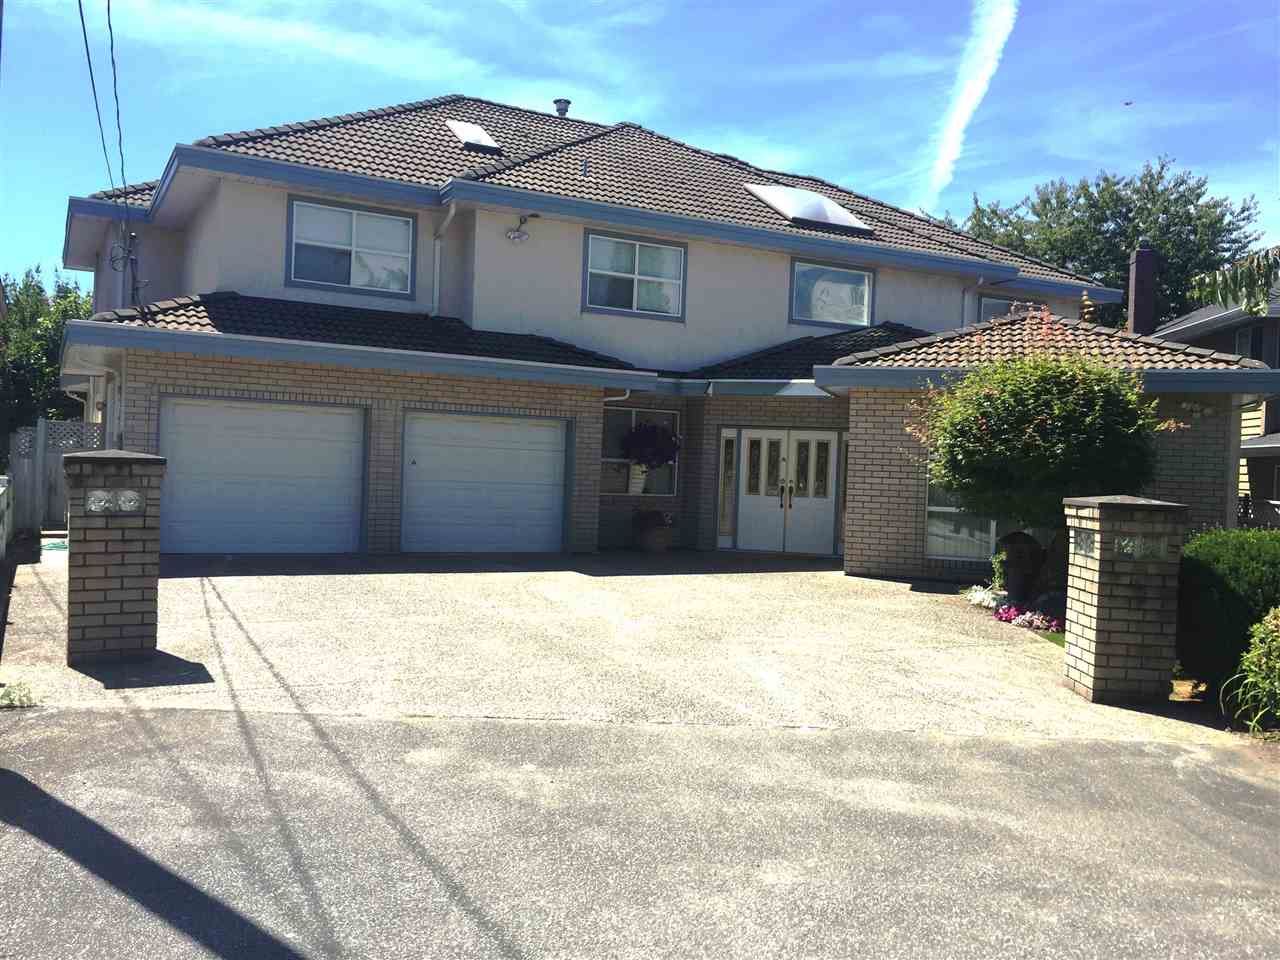 Well-kept 2 level Executive house in desirable Gibbons neighborhood, 6 bedrooms + den + games room, 4.5 baths, over 4500 sq ft living space on huge lot 8381 sq ft., Many features including radiant heat on both floors, granite entrance, kitchen with wok kitchen, air conditioning in games room and master bedroom, master bedroom with 2 W/I closets, 3 ensuites, 4 skylights, landscaped western backyard with ponds, B/I security camera, alarm, intercom, & vacuum system, 2 staircases, tiled roof, 2 x 6 construction, sauna, 2 car garage. Close to shopping centre, restaurants, Thompson Elementary, Burnett Secondary, Golf Course & the Dyke. All meas. approx. buyer to verify if important.  Open House Saturday 12/9 2:00-4:00 pm